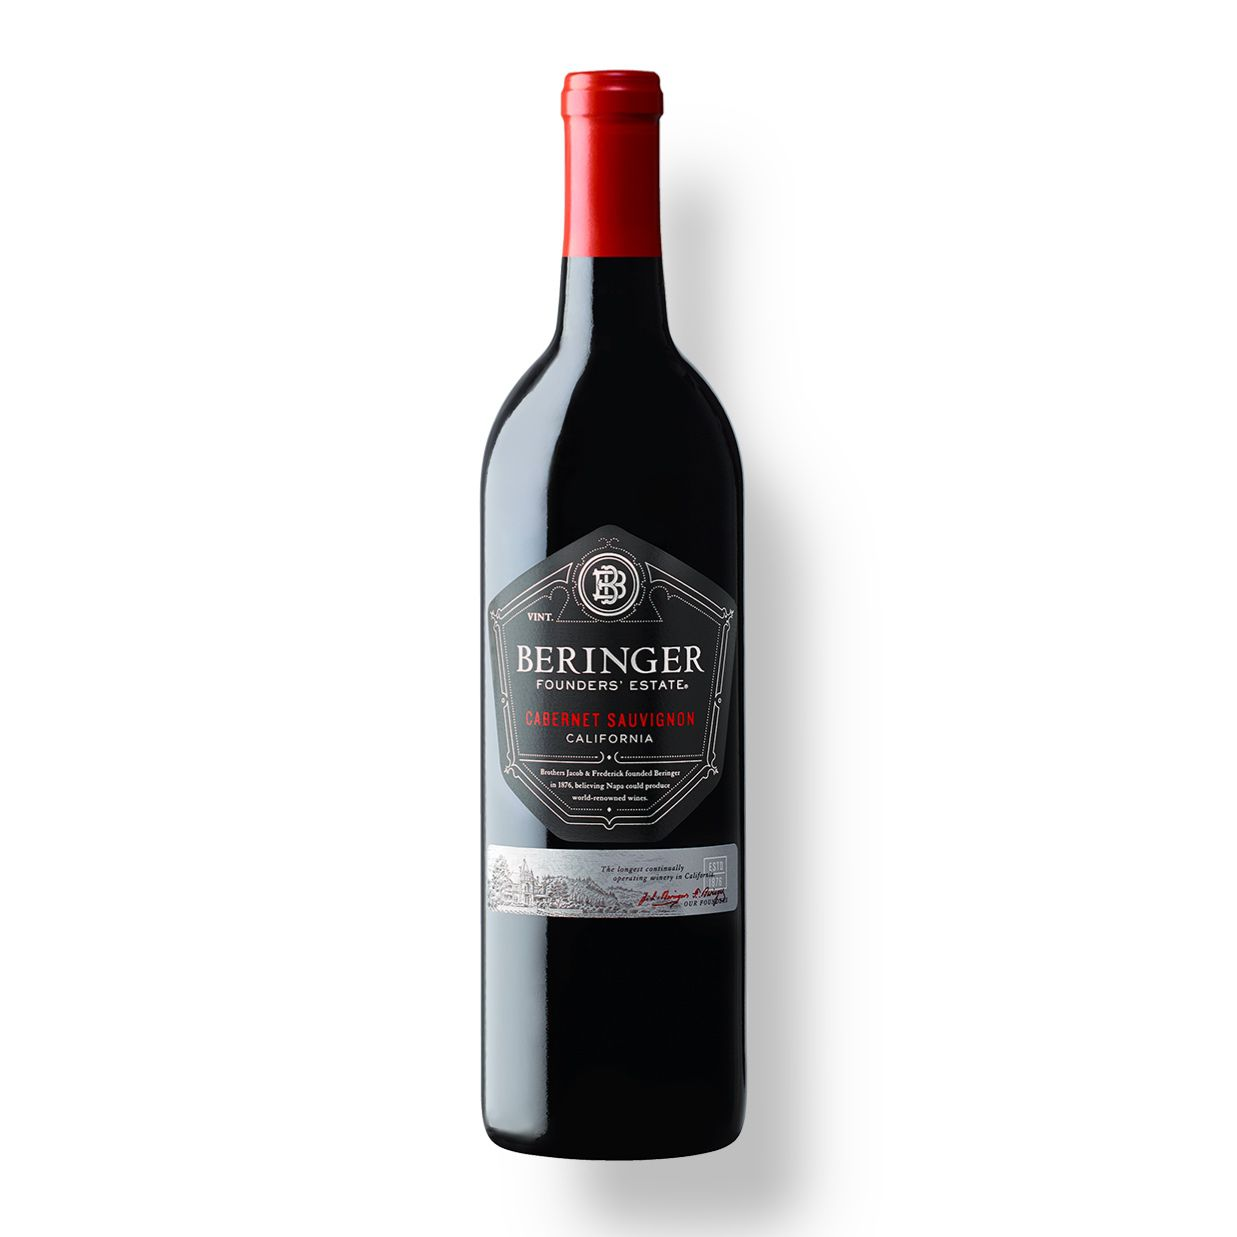 Founders' Estate Cabernet Sauvignon 2016